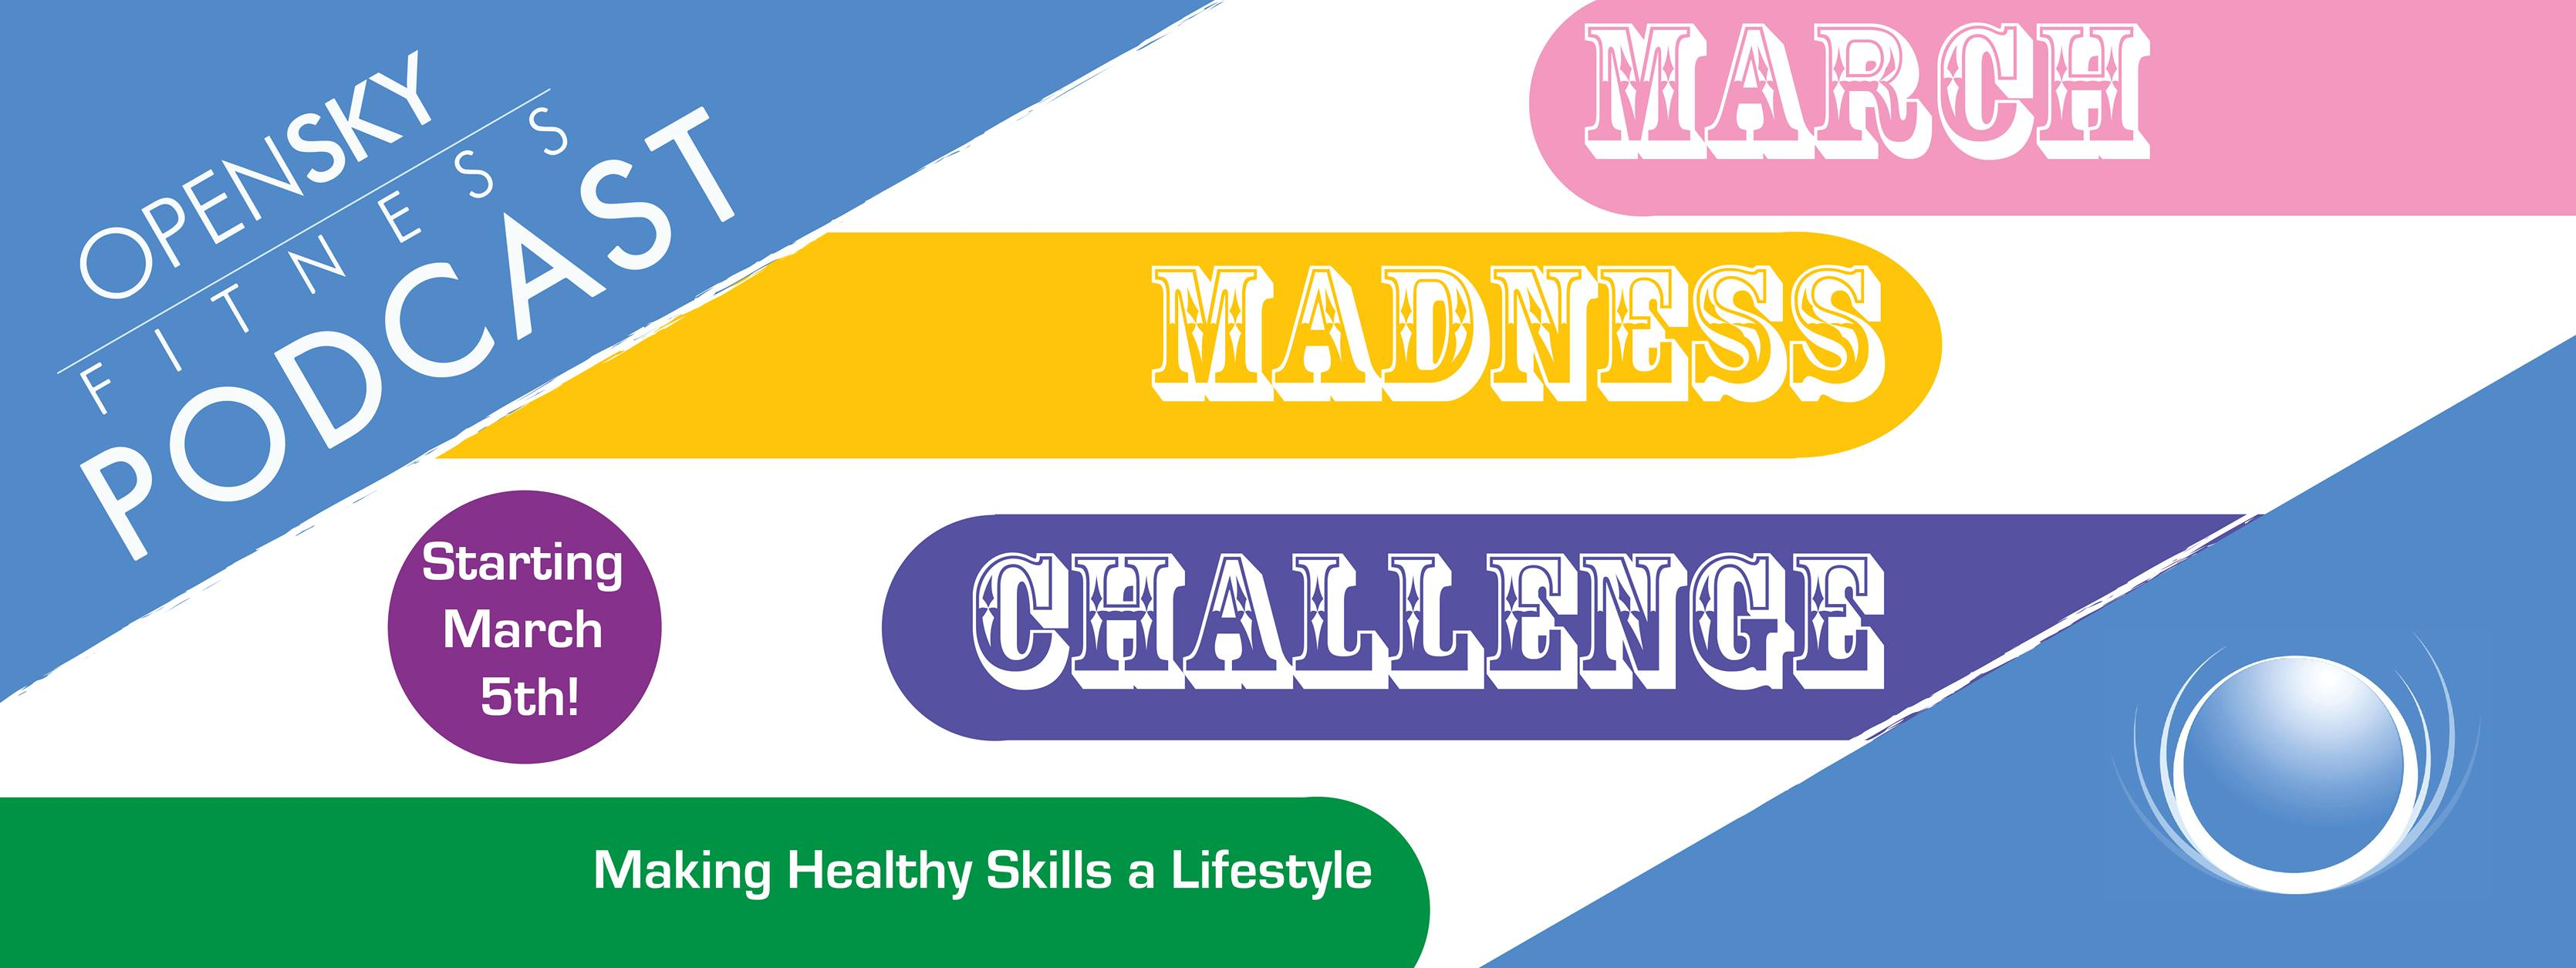 Open Sky FItness Podcast March Madness Challenge 2017